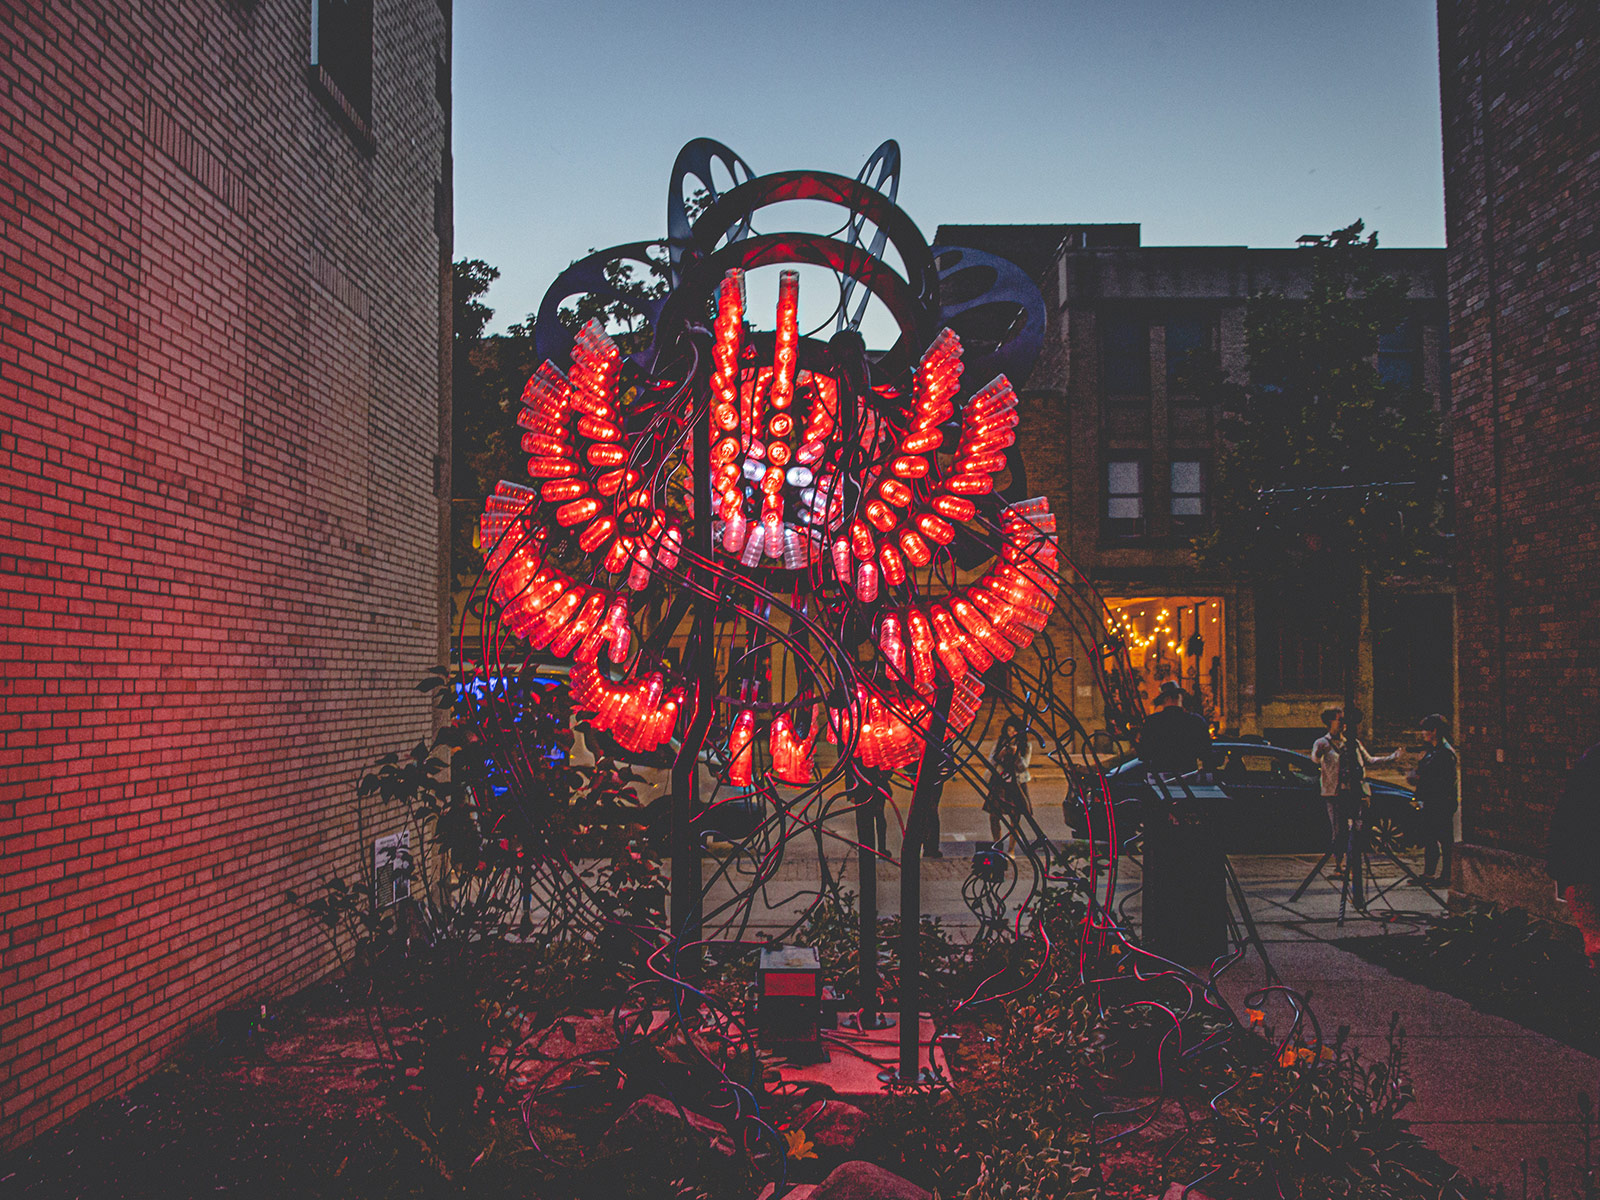 A midwest industrial jellyfish sculpture lit with red LEDs